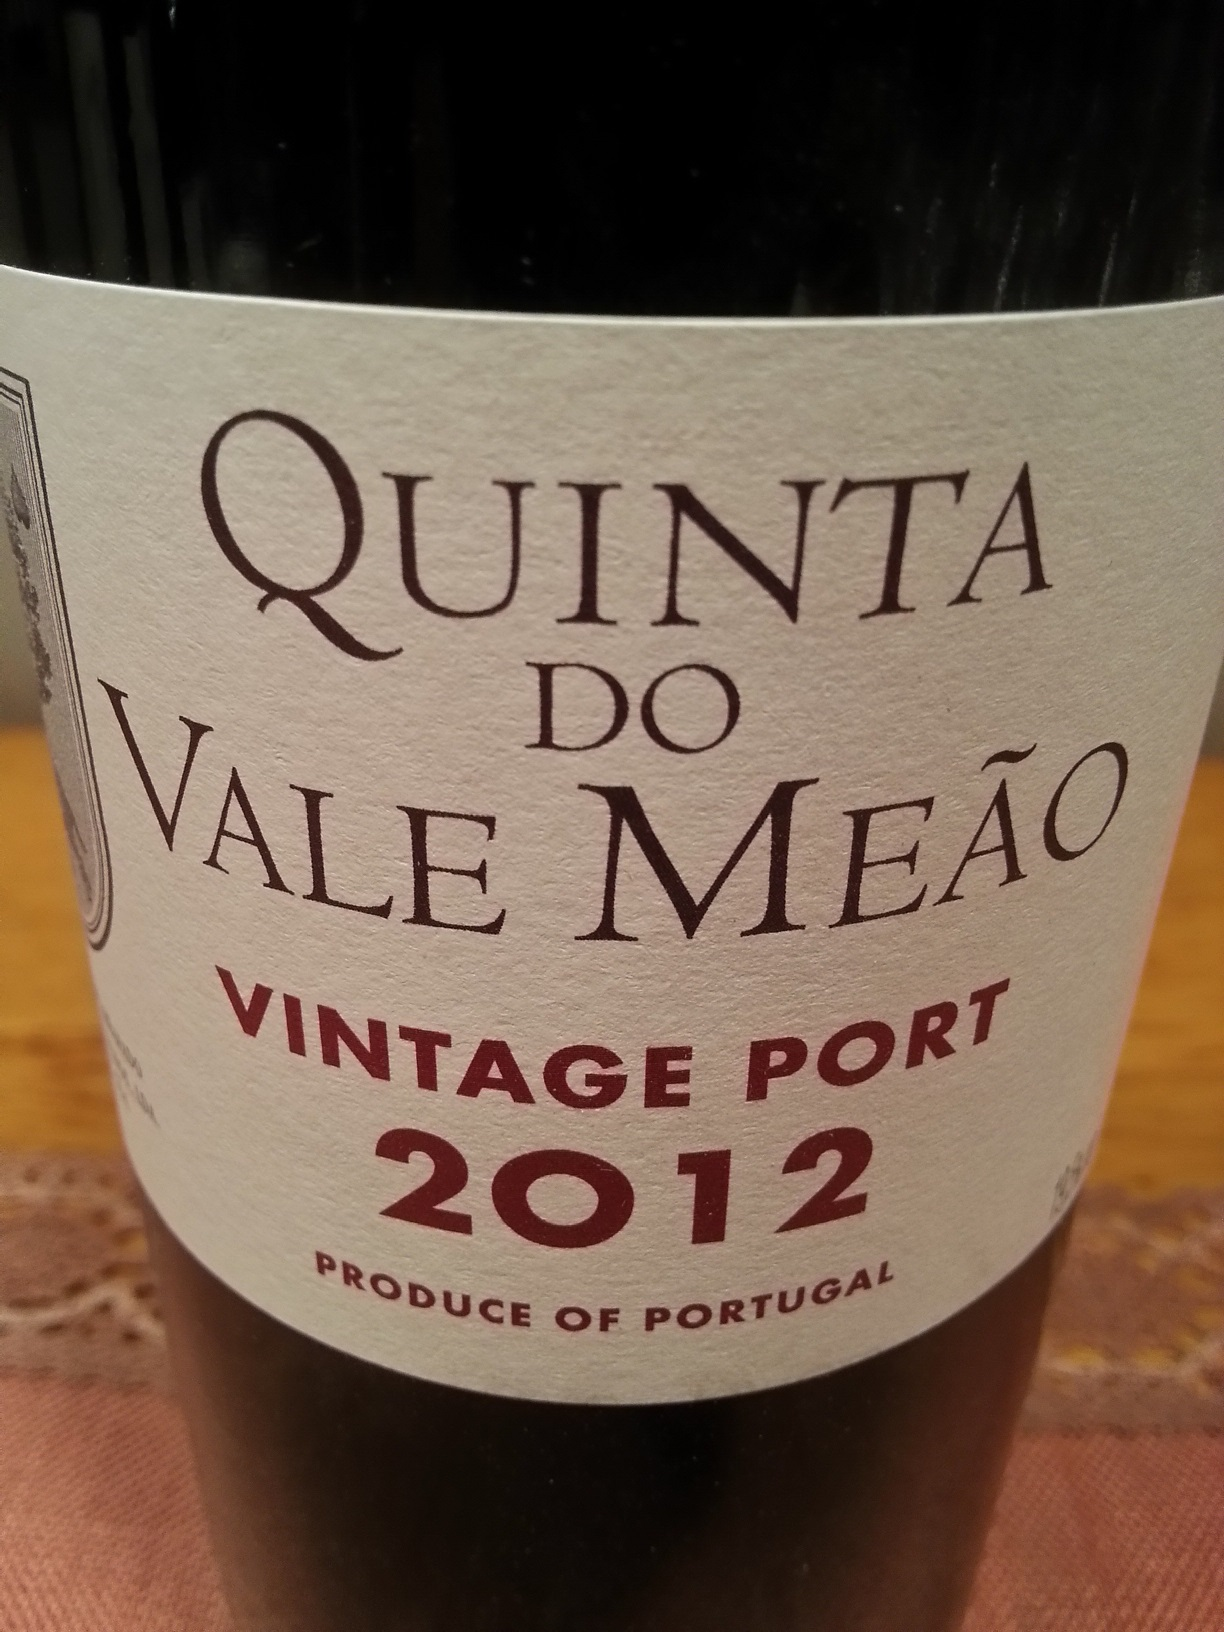 2012 Vintage Port | Quinta do Vale Meão